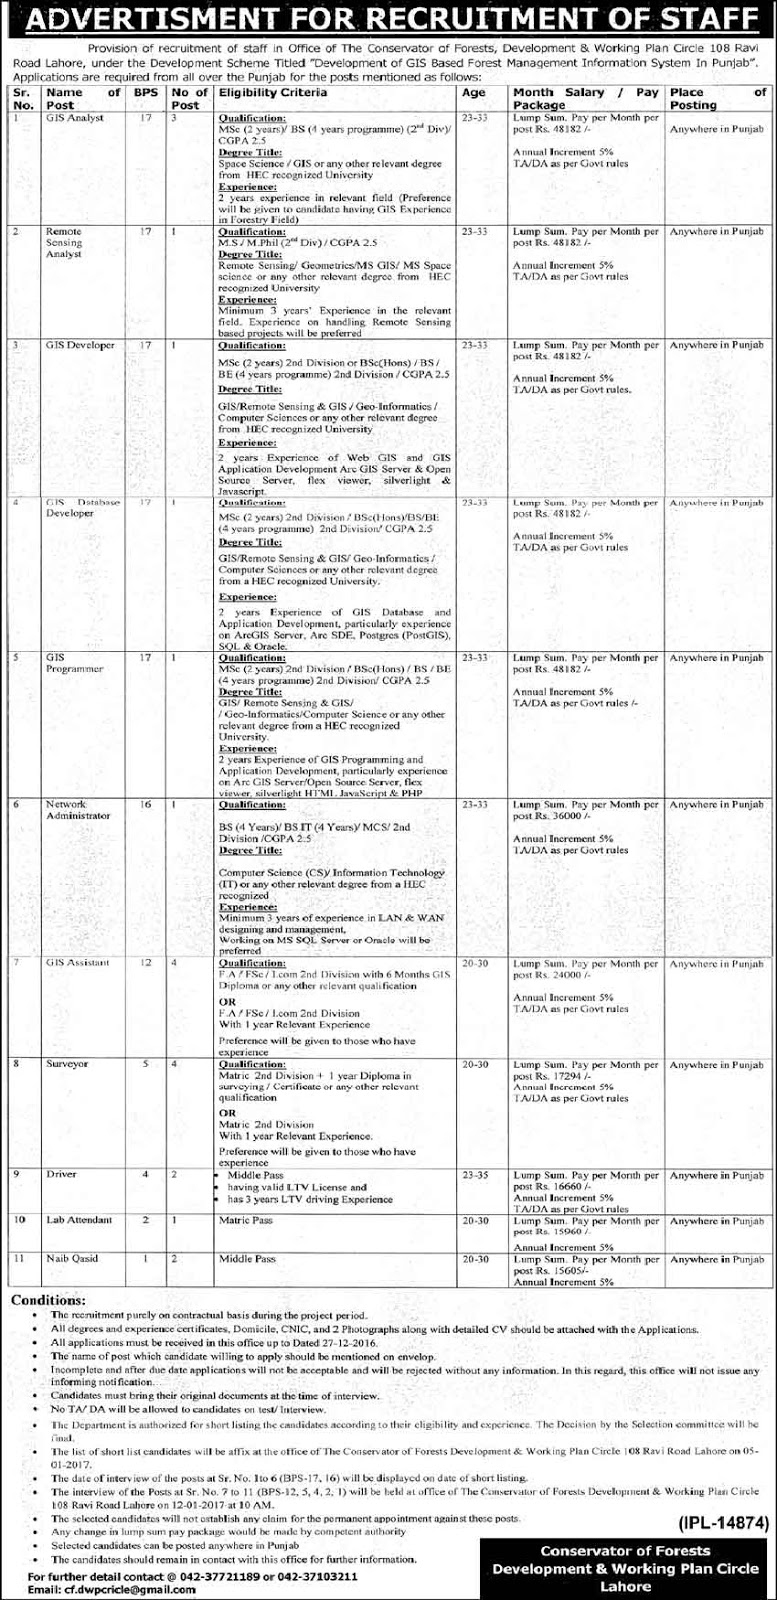 Forest Development And Working Plan Circle Jobs